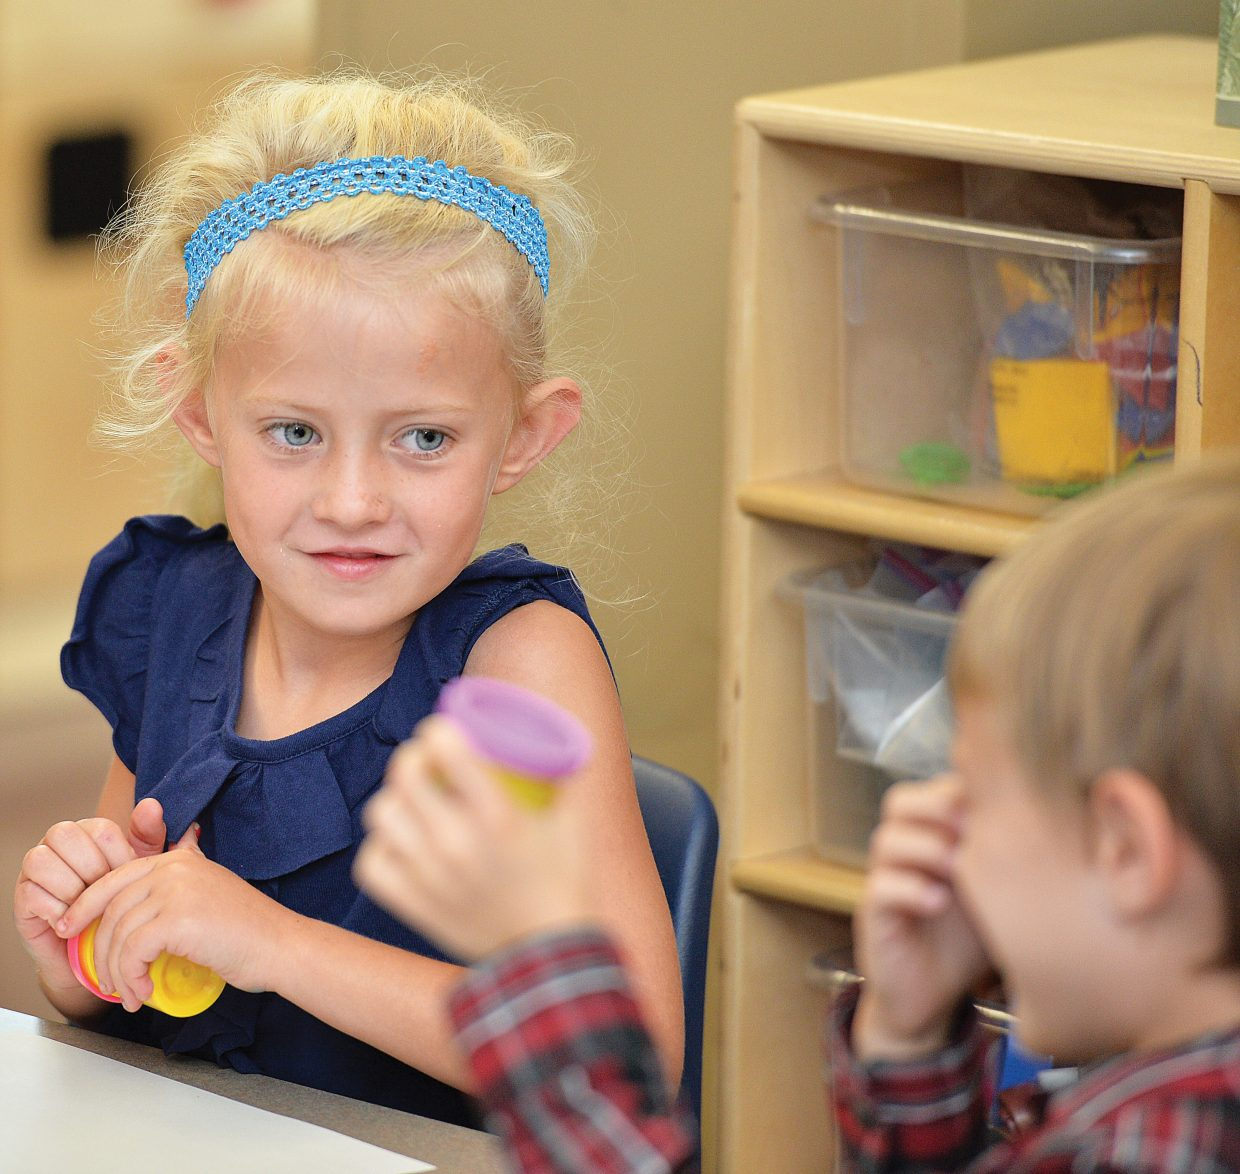 Kindergartner Kenzie Moore looks to a classmate while opening a can of Play-Doh during her first day of class at Soda Creek Elementary School Wednesday morning. Wednesday marked the first day of school for kindergartners in Steamboat Springs.